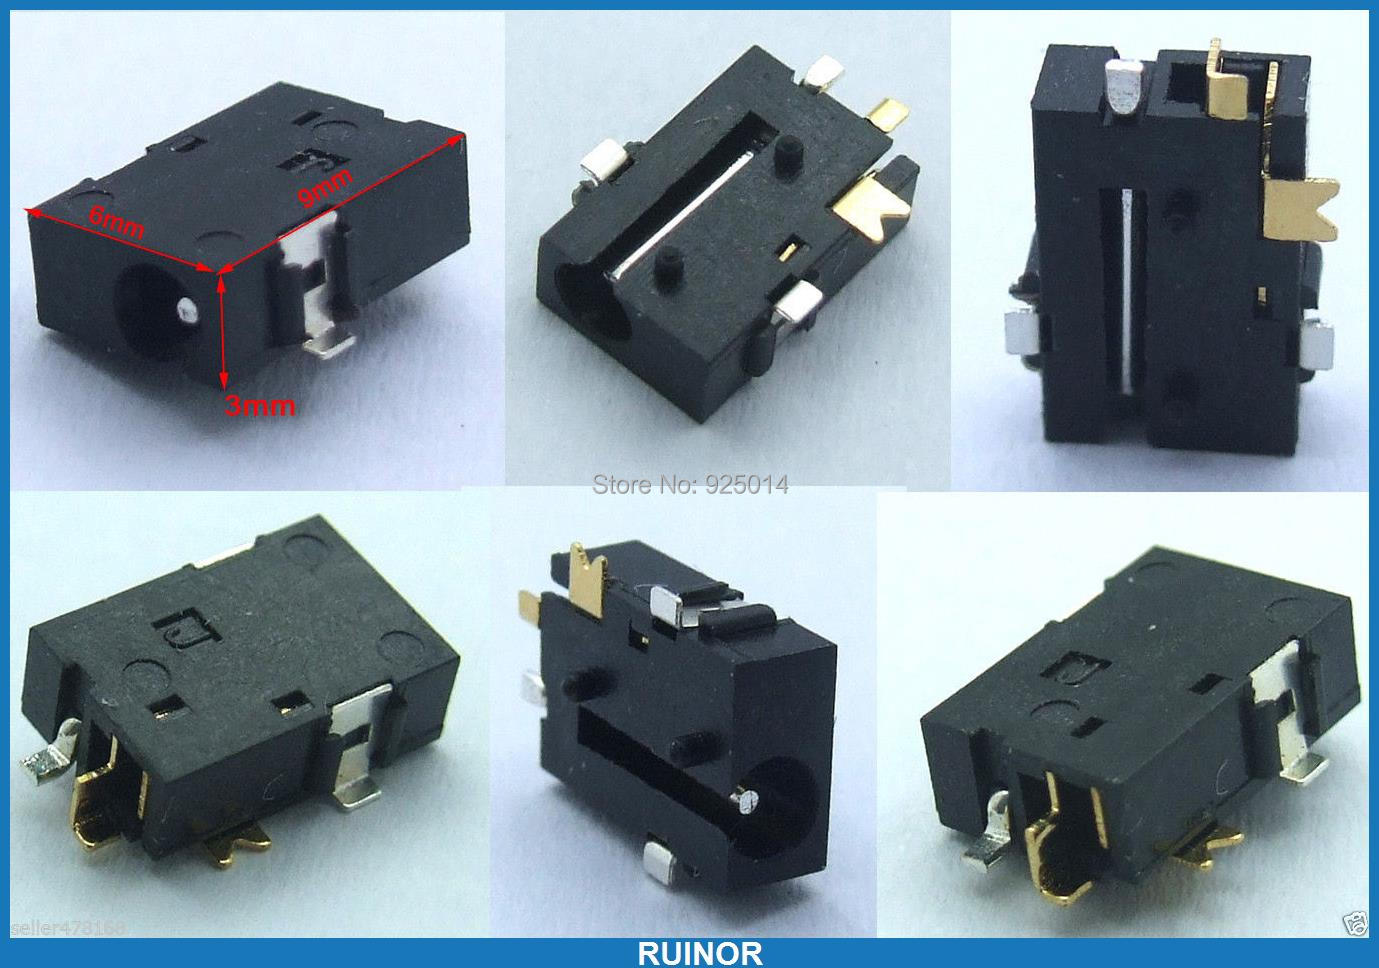 50PCS 0.7mm pin SMD SMT 2.5mm X 0.65mm DC socket 0.7mm pin for Tablets Power Charger Plug(China (Mainland))